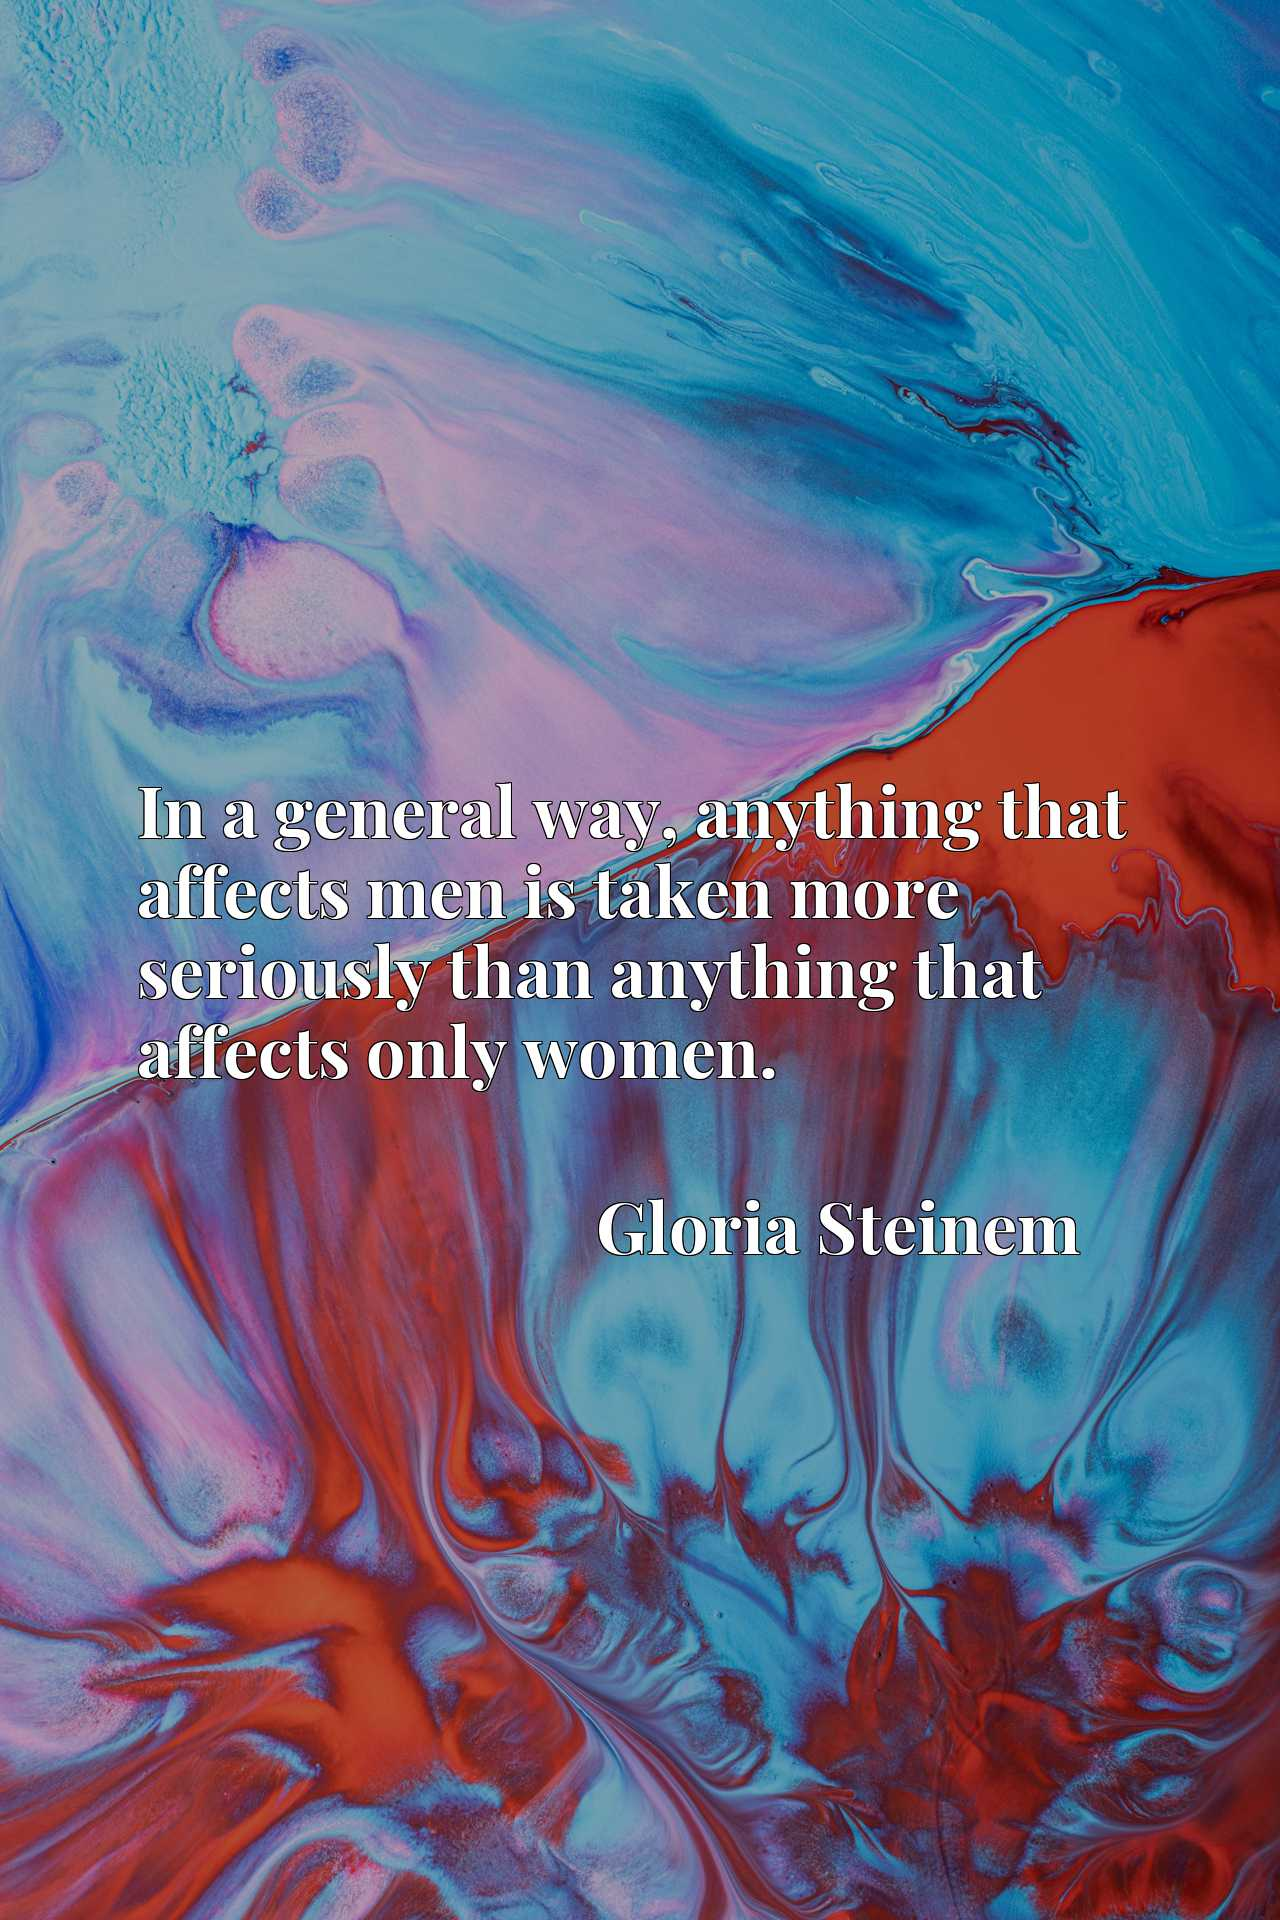 In a general way, anything that affects men is taken more seriously than anything that affects only women.